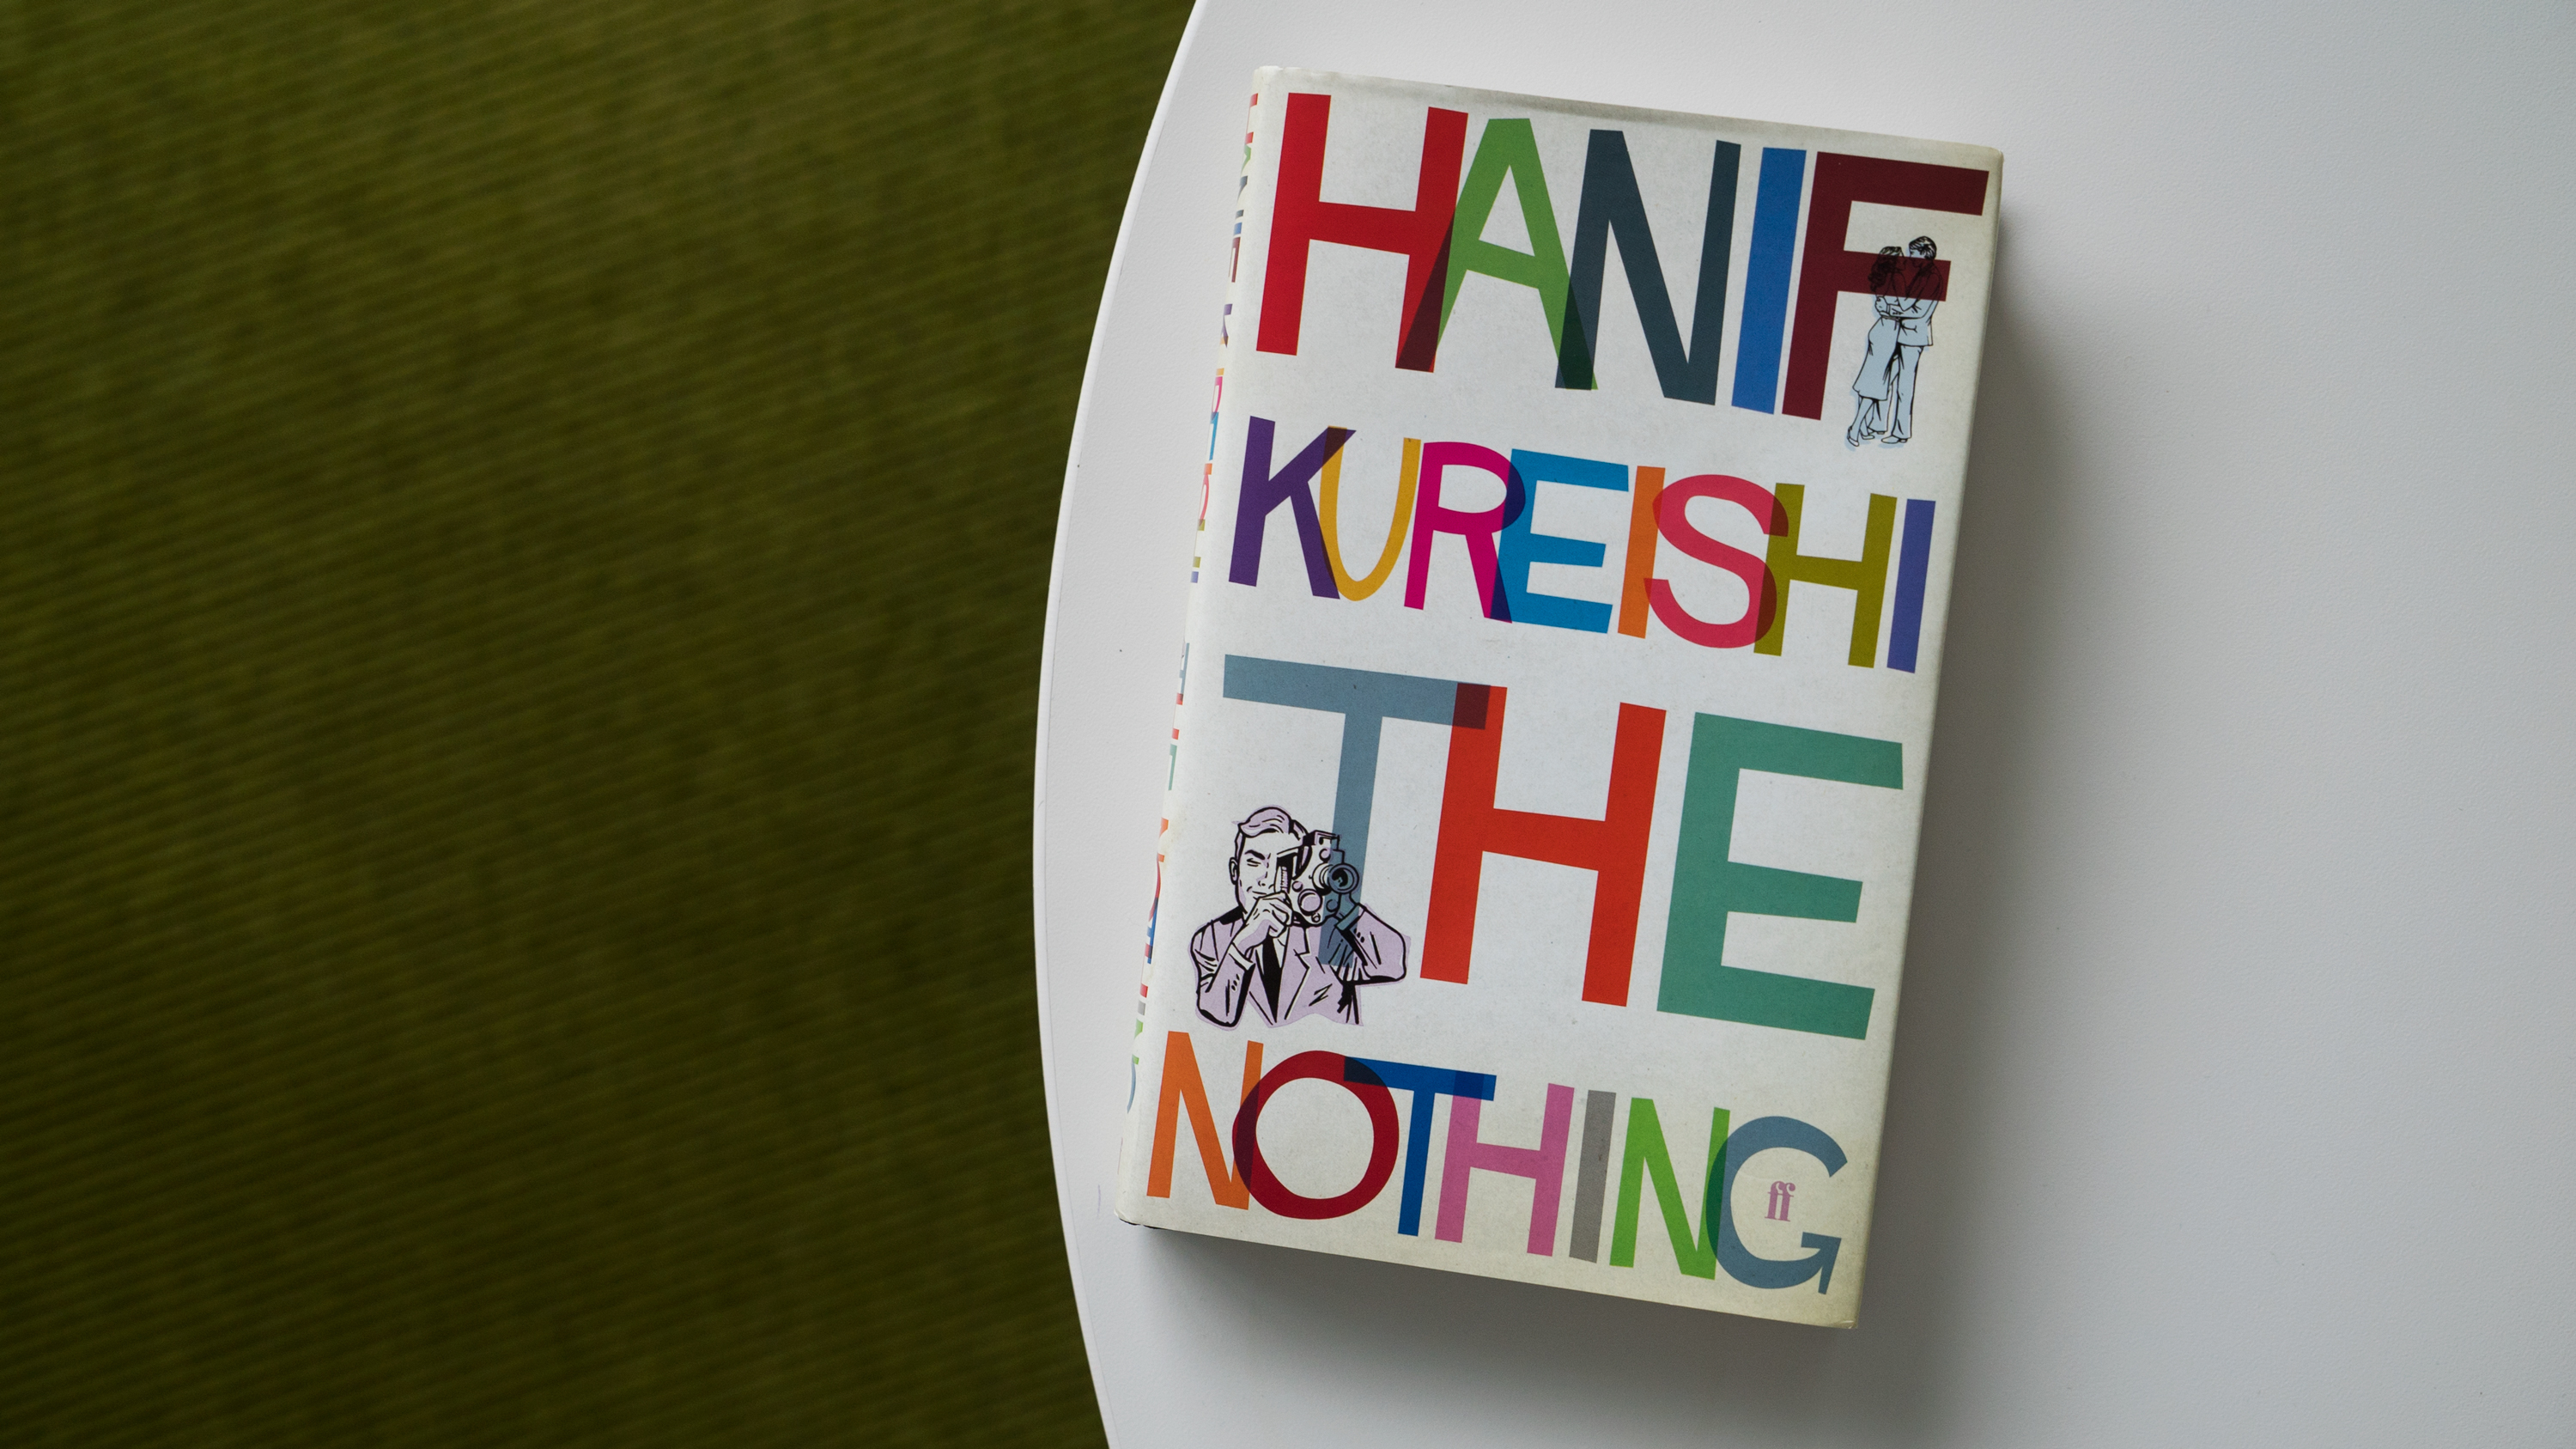 the cover of Hanif Kureishi's The Nothing